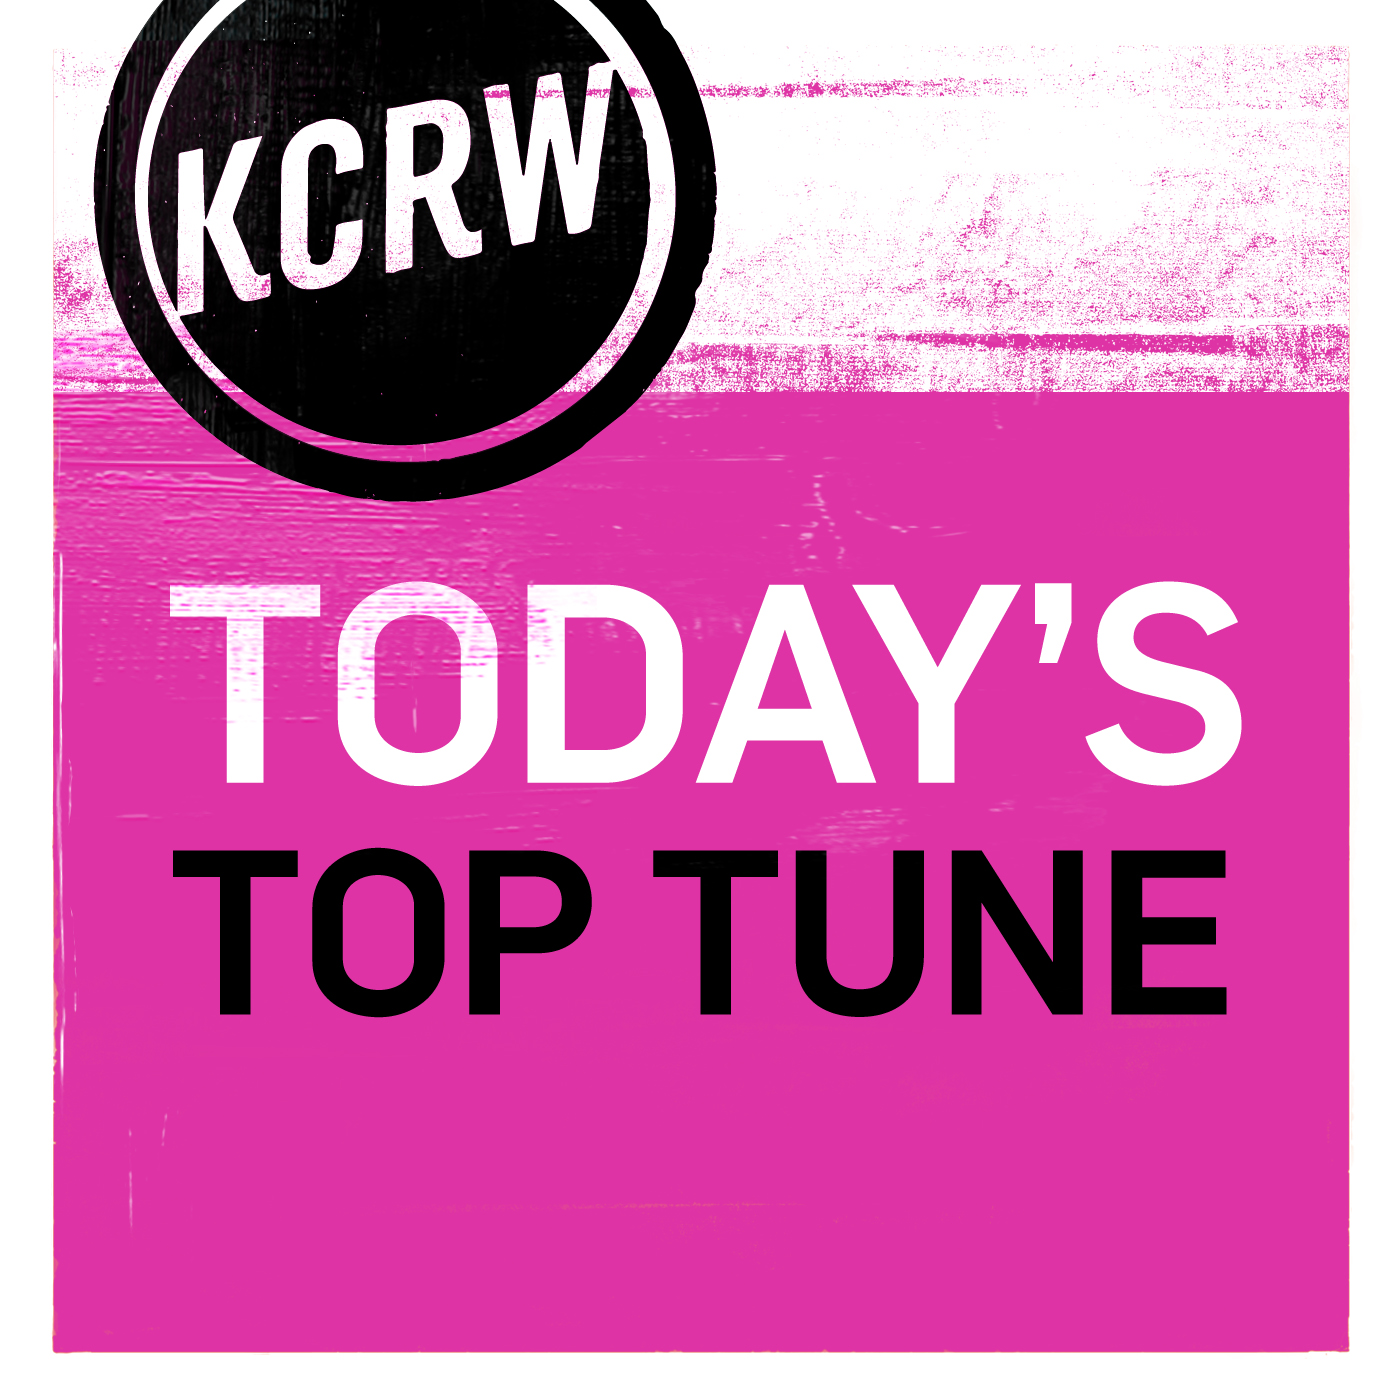 KCRW's Today's Top Tune